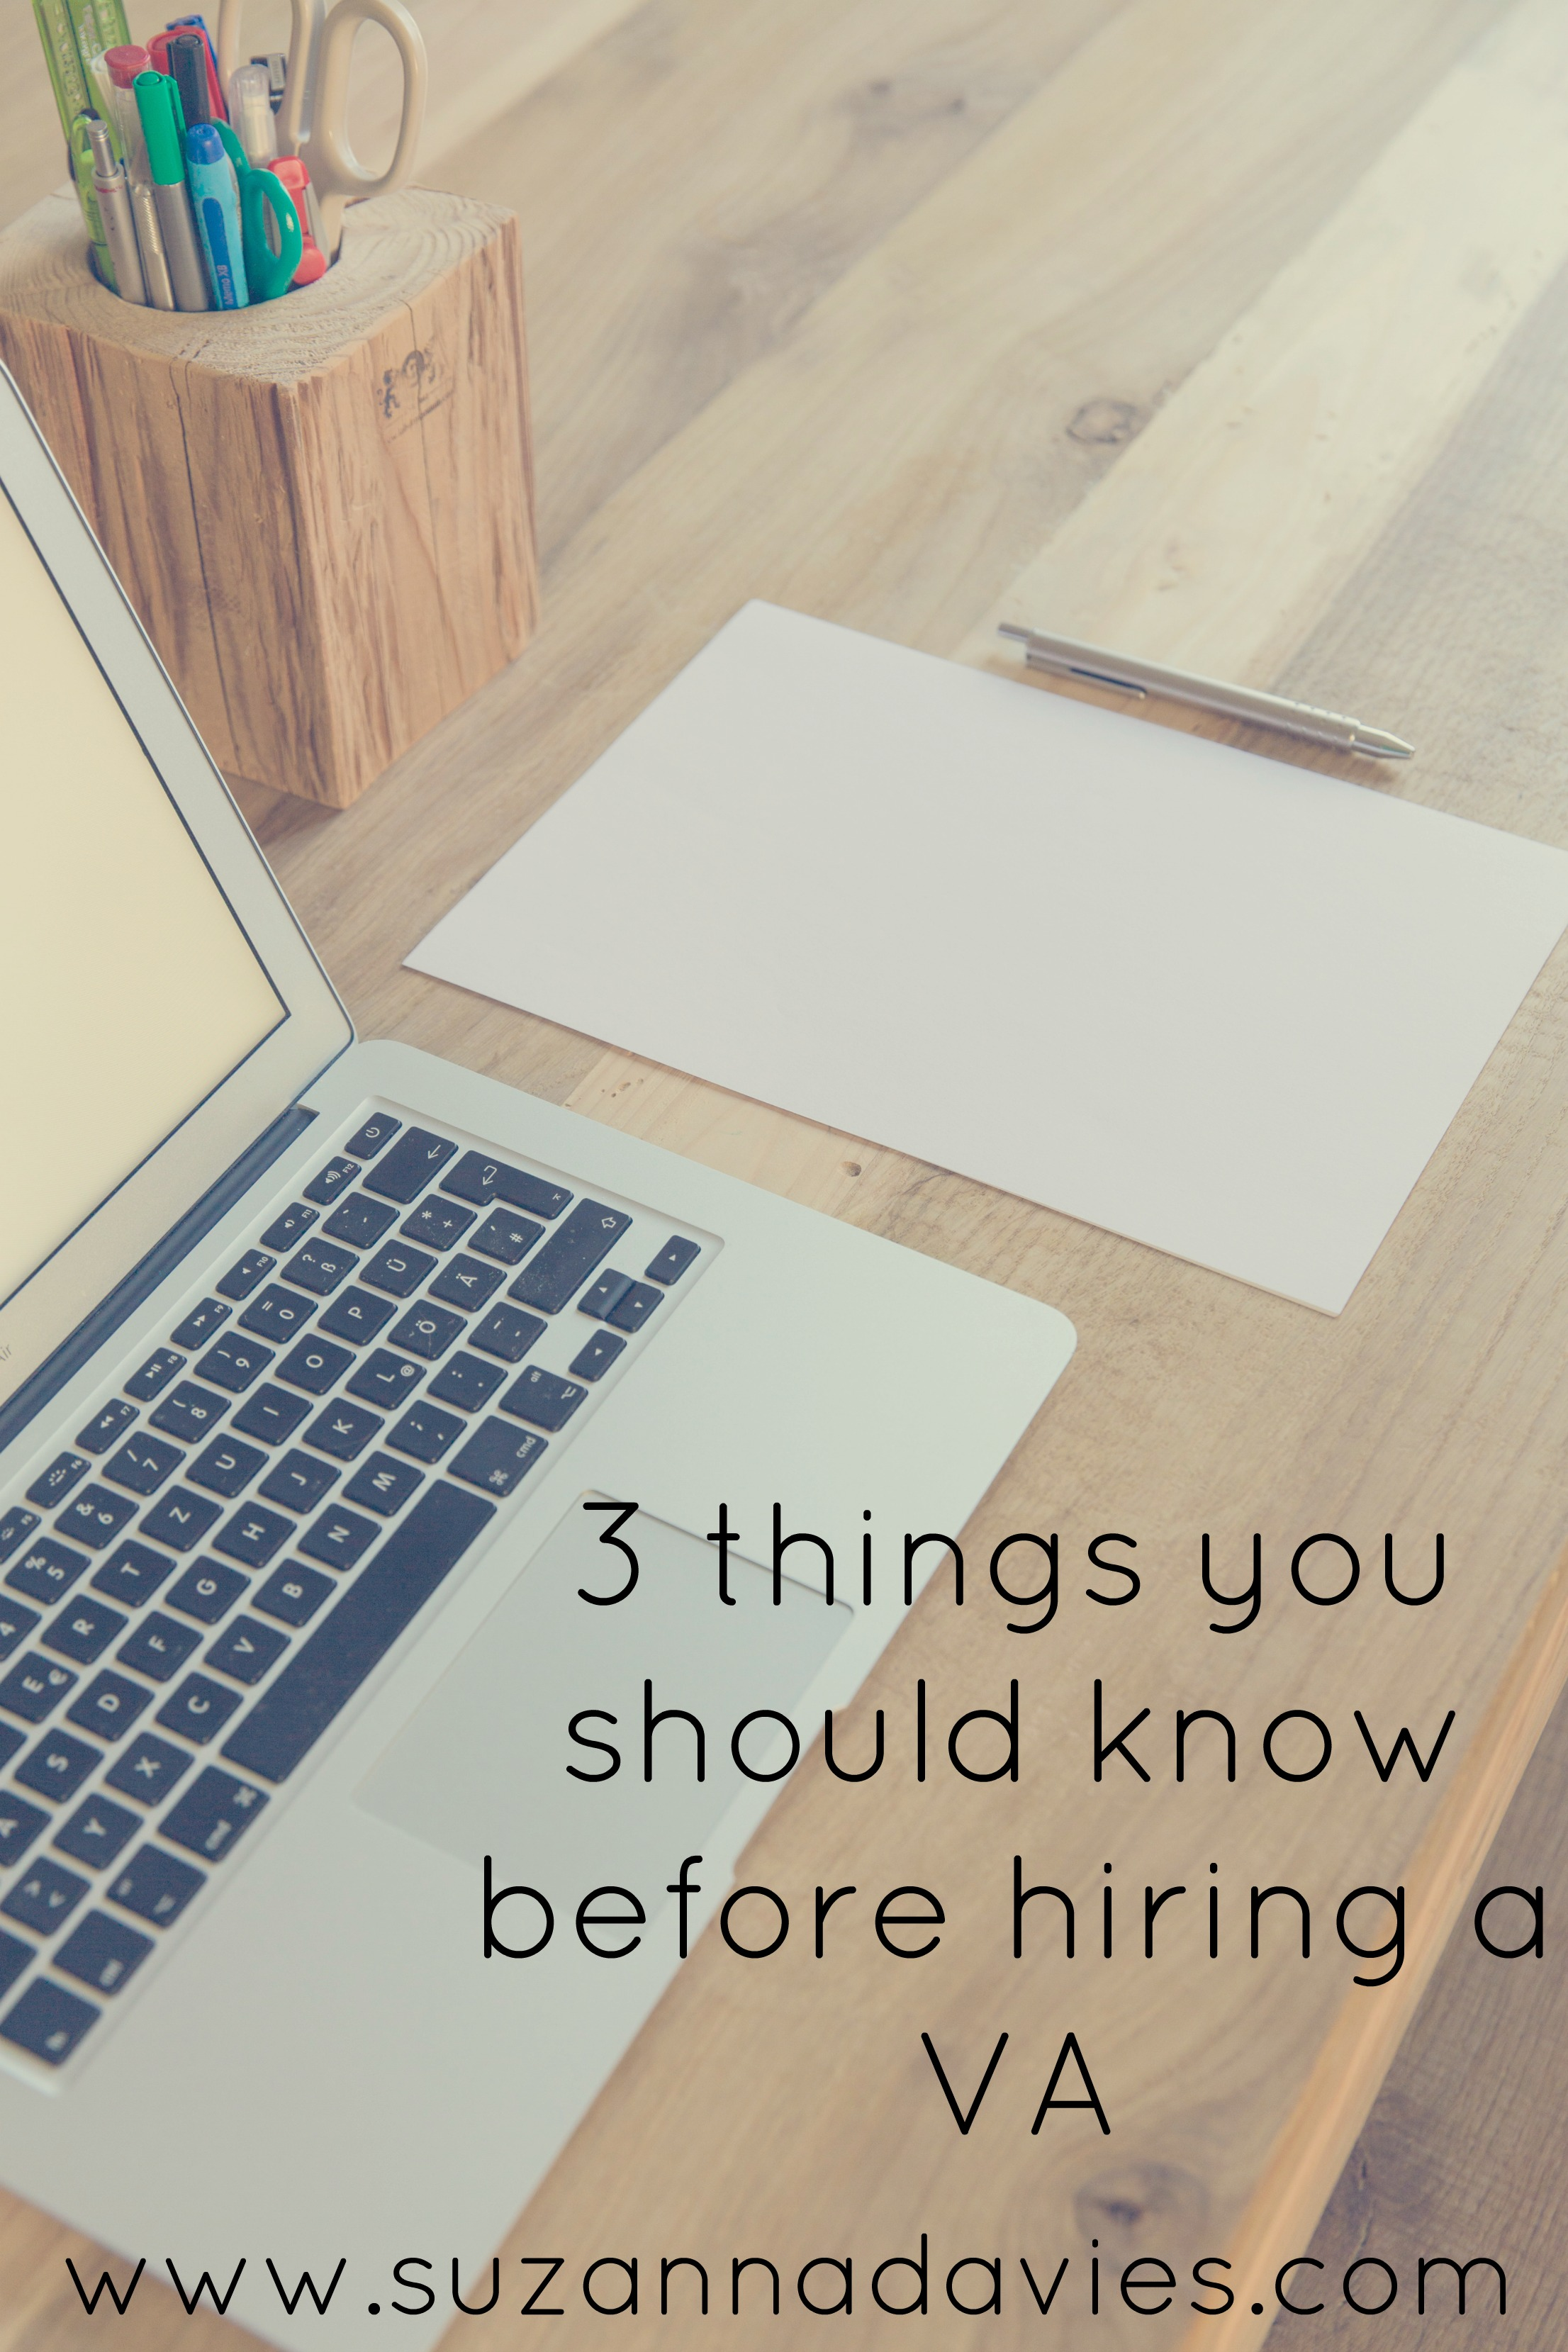 3 Things You Should Know Before Hiring a VA